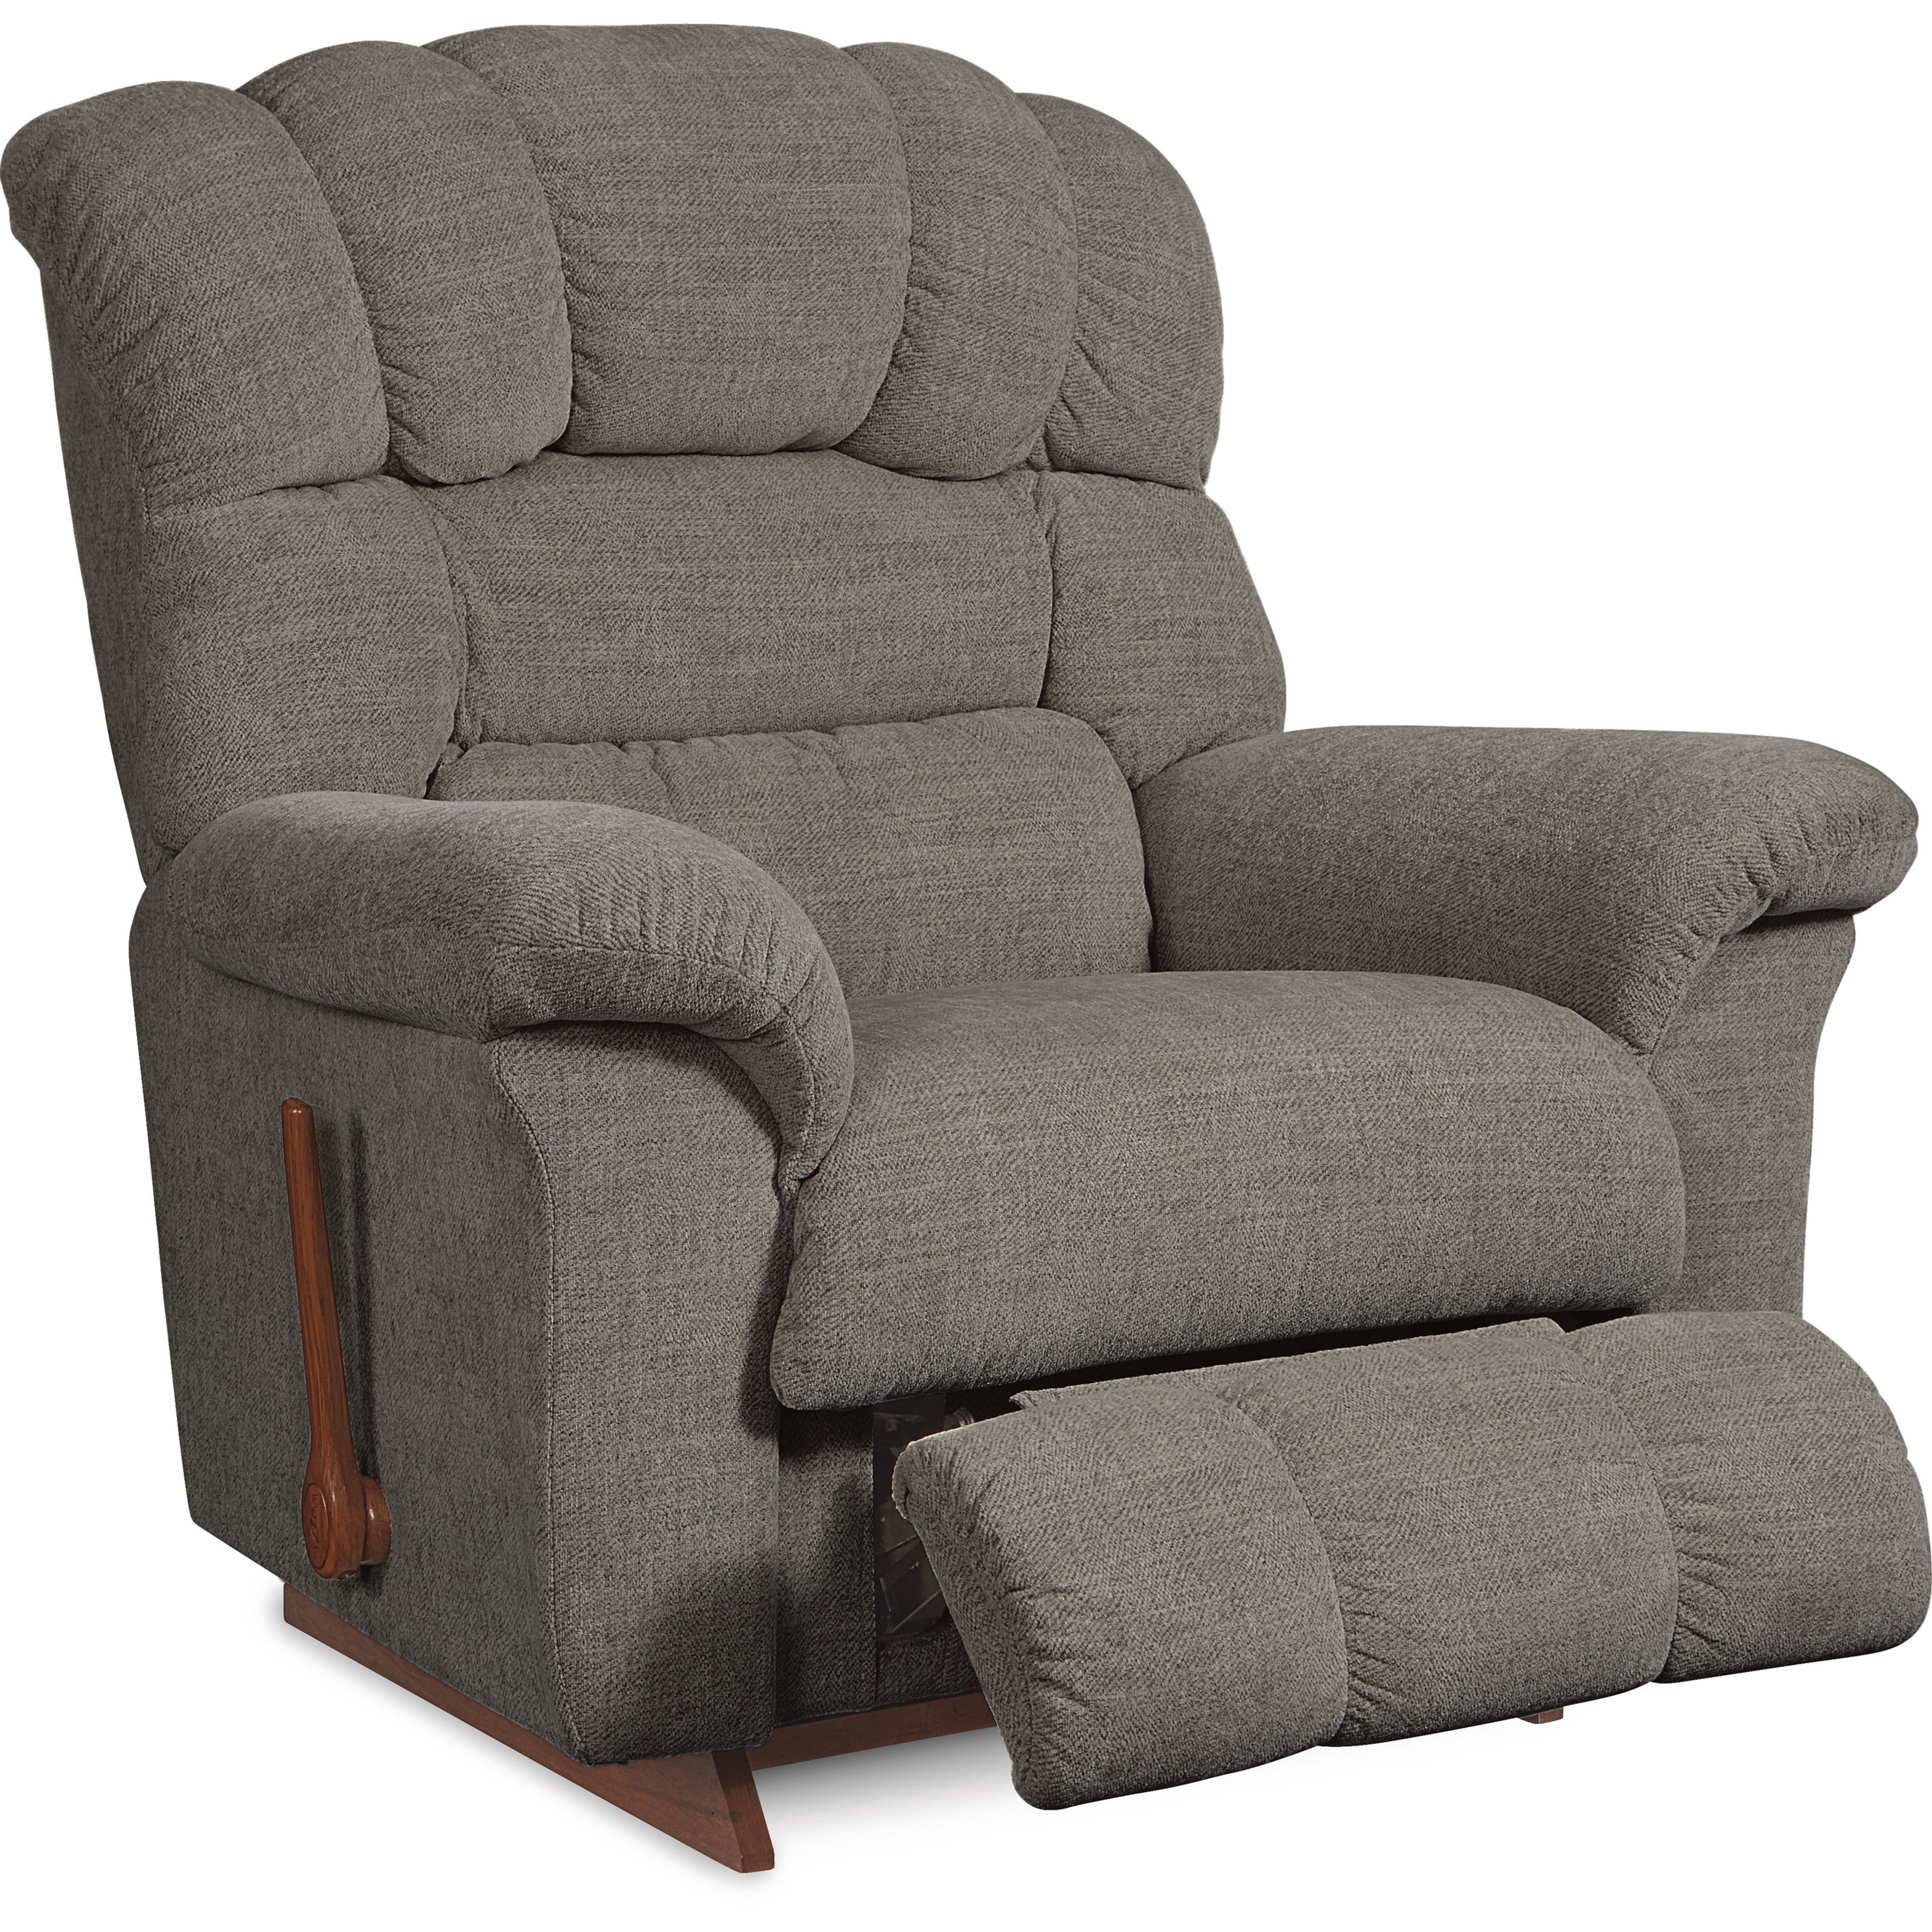 La Z Boy Crandell Reclina Rocker Reclining Chair Vandrie